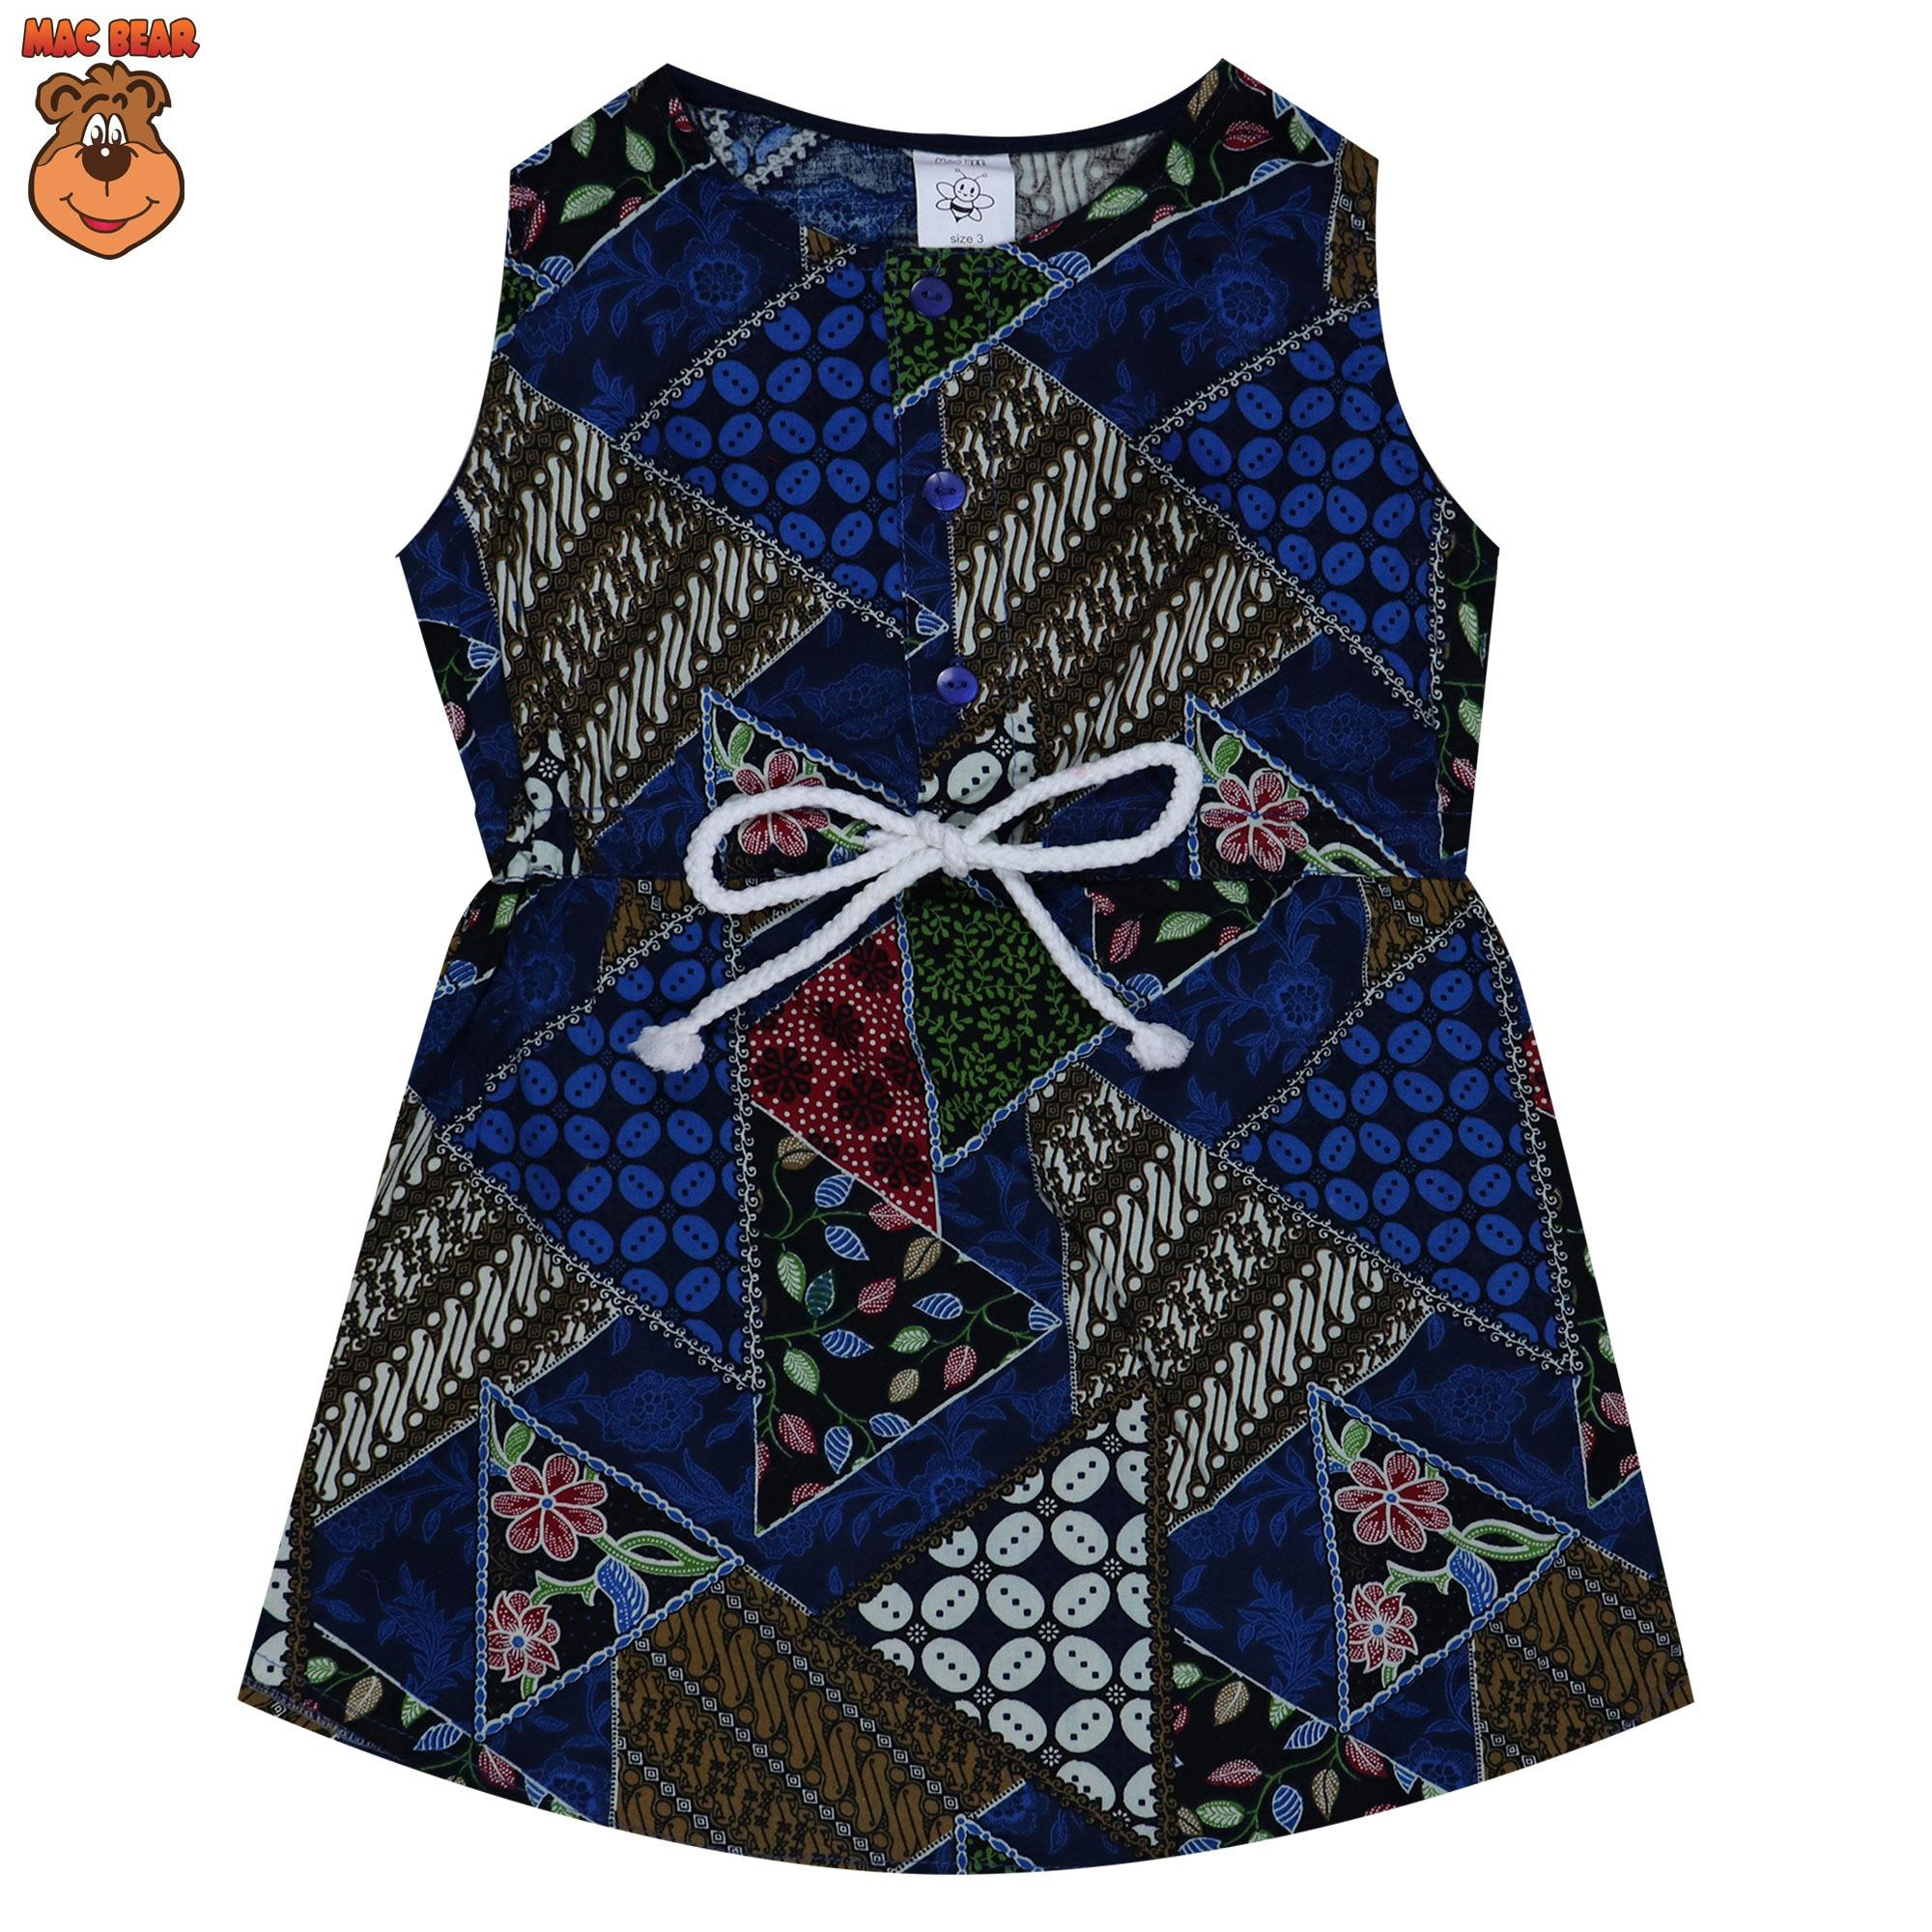 MacBee Kids Baju Anak Dress Batik